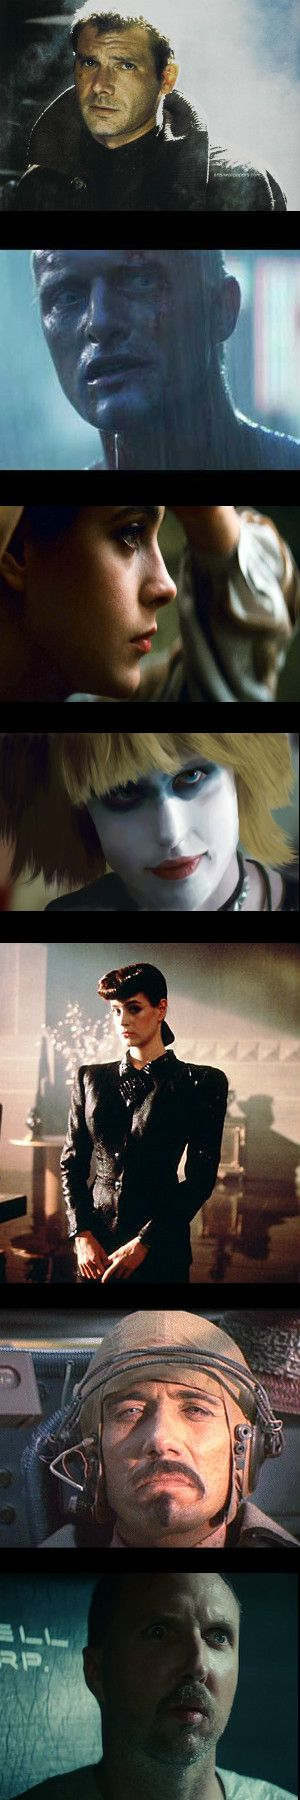 From top to bottom: Harrison Ford as Deckard, the blade runner; Rutger Hauer as Roy Batty; Sean Young as beautiful Rachael; Daryll Hannah as Pris; Sean Young again; James Esward Olmos as Gaff; and Brian James as Leon. Blade Runner 1982 Joanna Cassidy, Zora, is missing here.